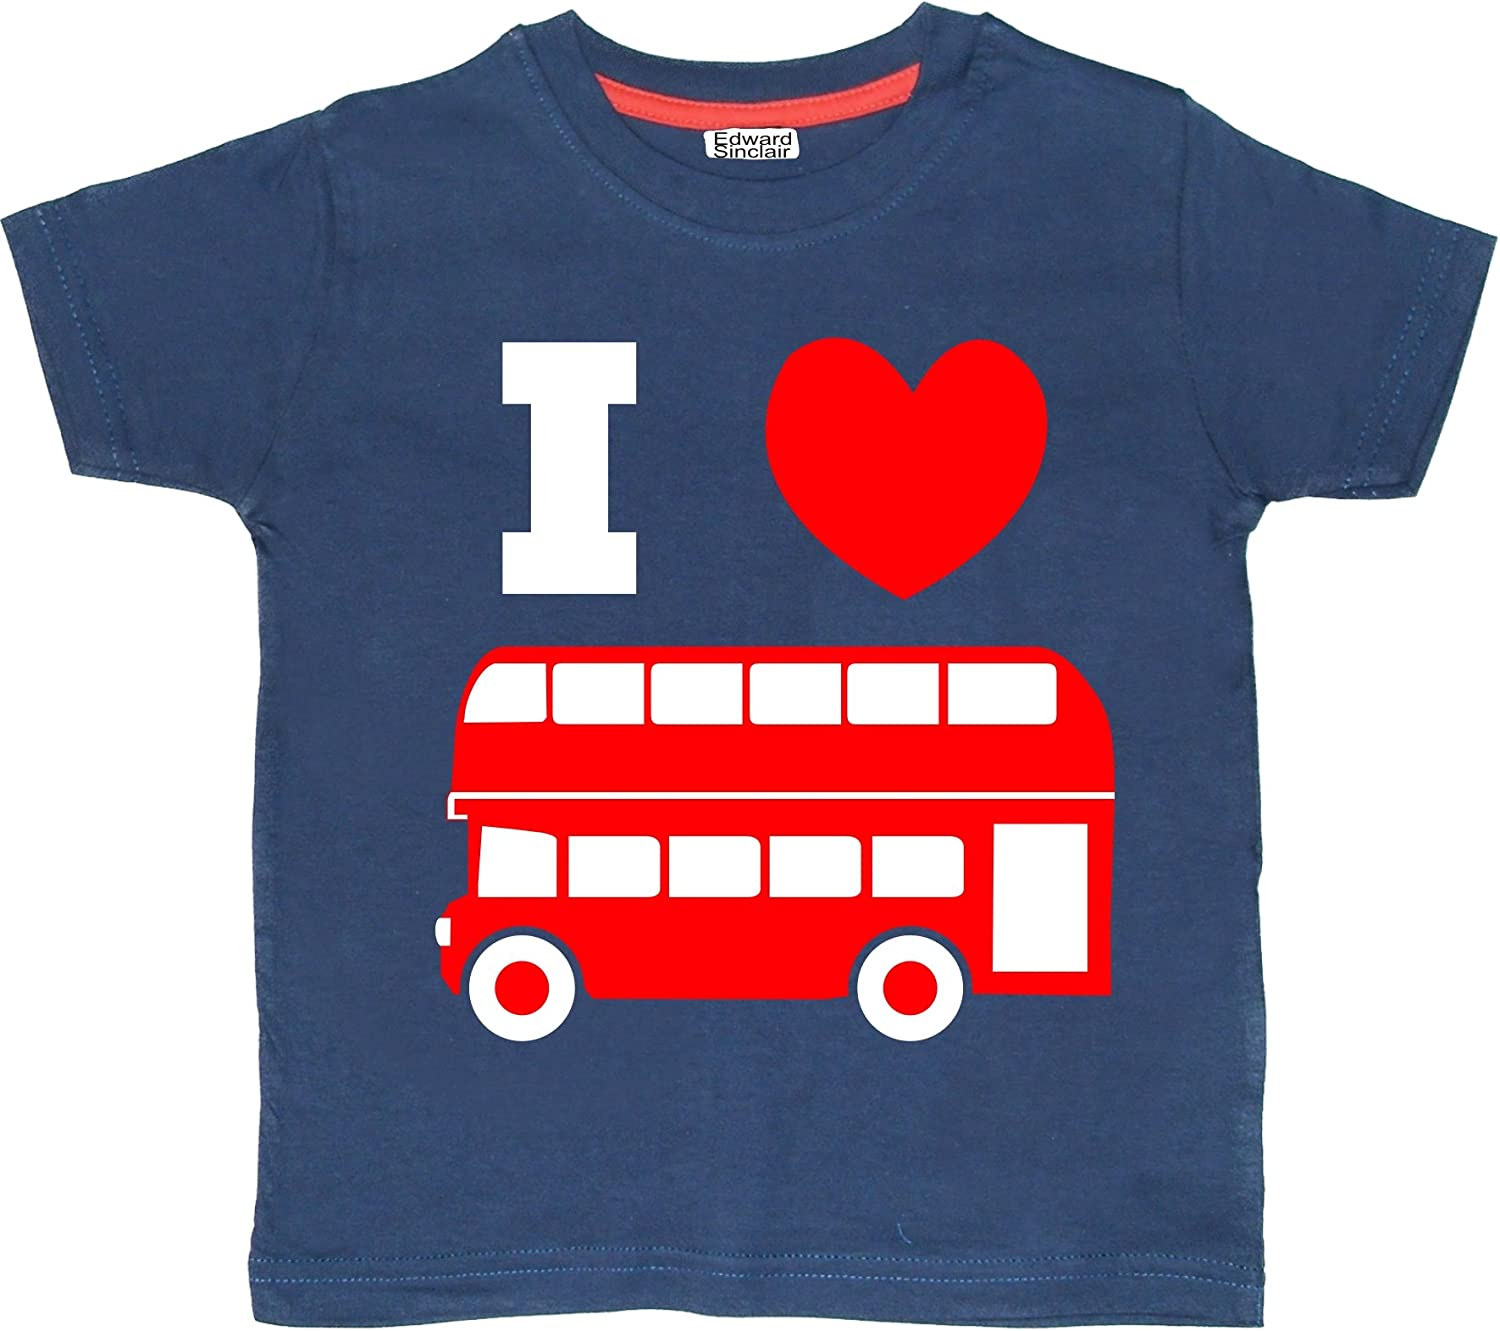 FREE P/&P NEW PERSONALISED DOUBLE DECKER BUS T-SHIRT KIDS BOYS-GIRLS OF ALL AGES